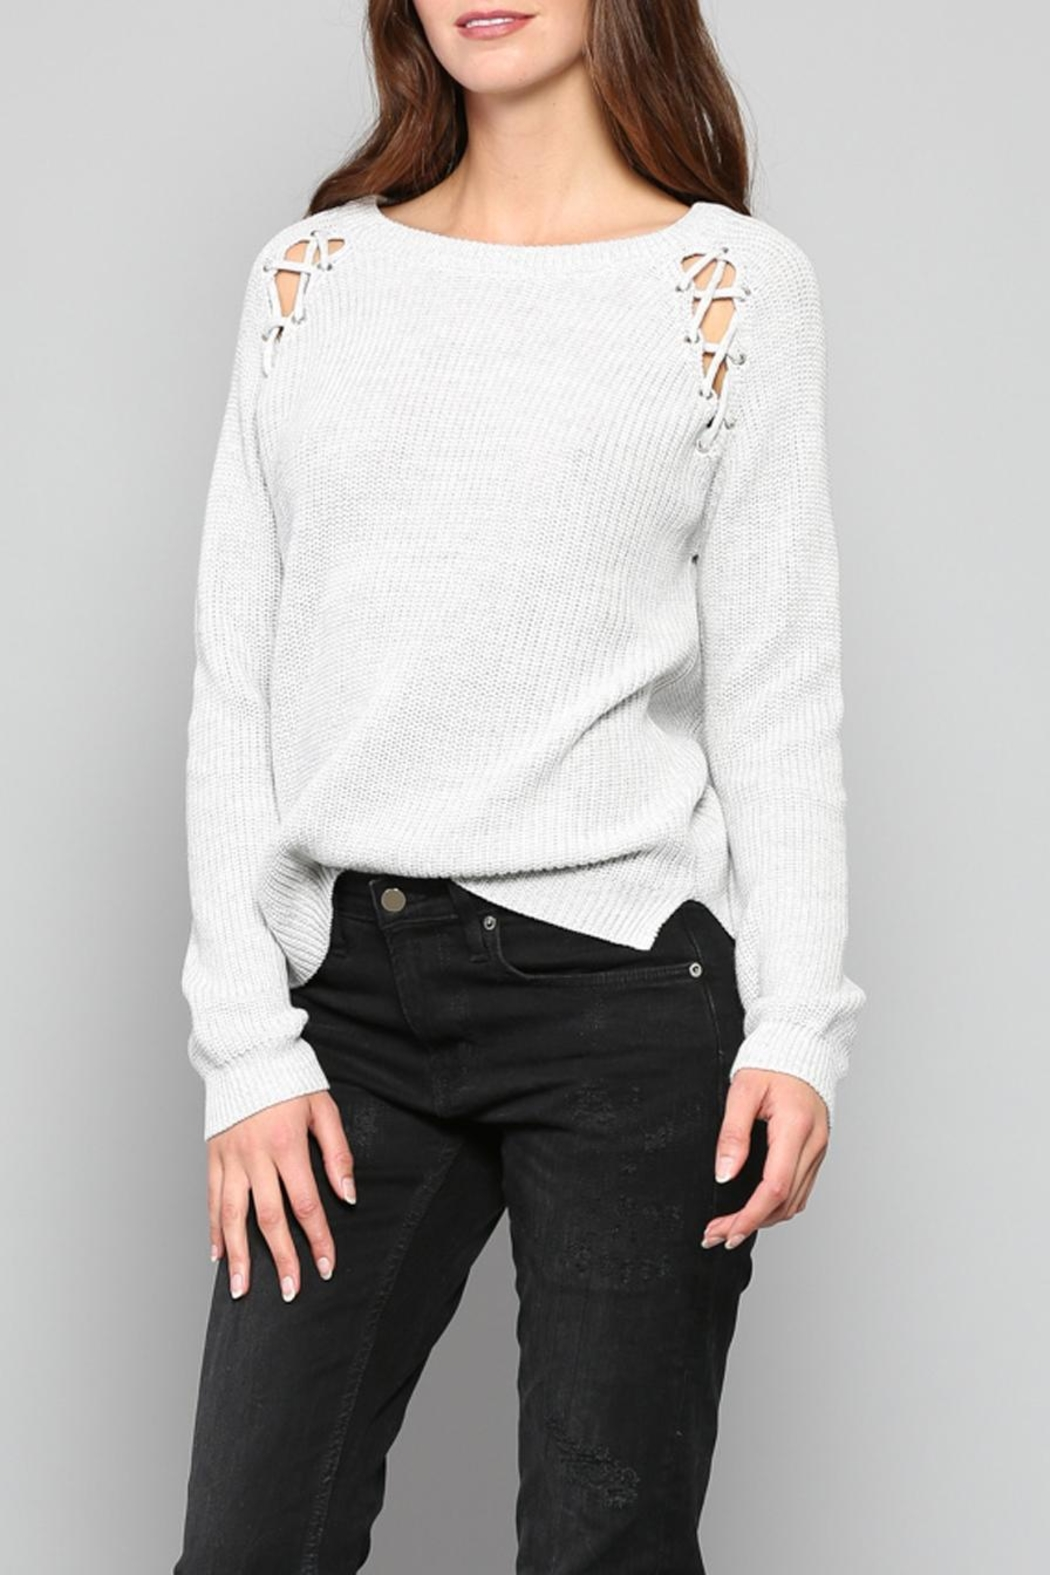 Fate Eyelet Shoulder Sweater - Main Image